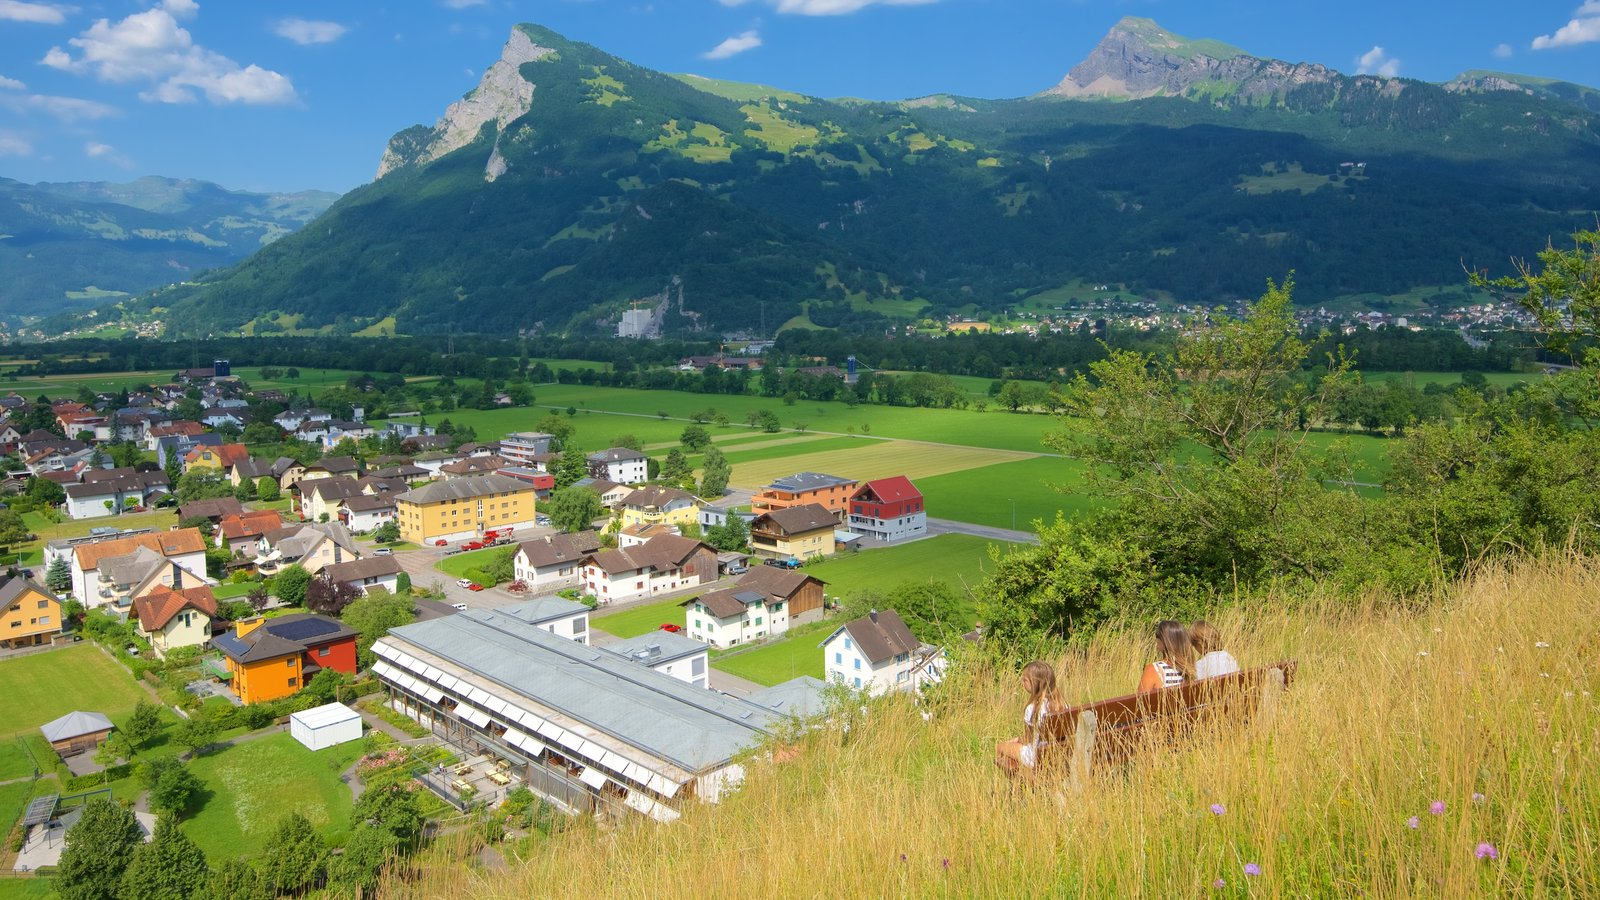 Liechtenstein featuring a small town or village, mountains and tranquil scenes